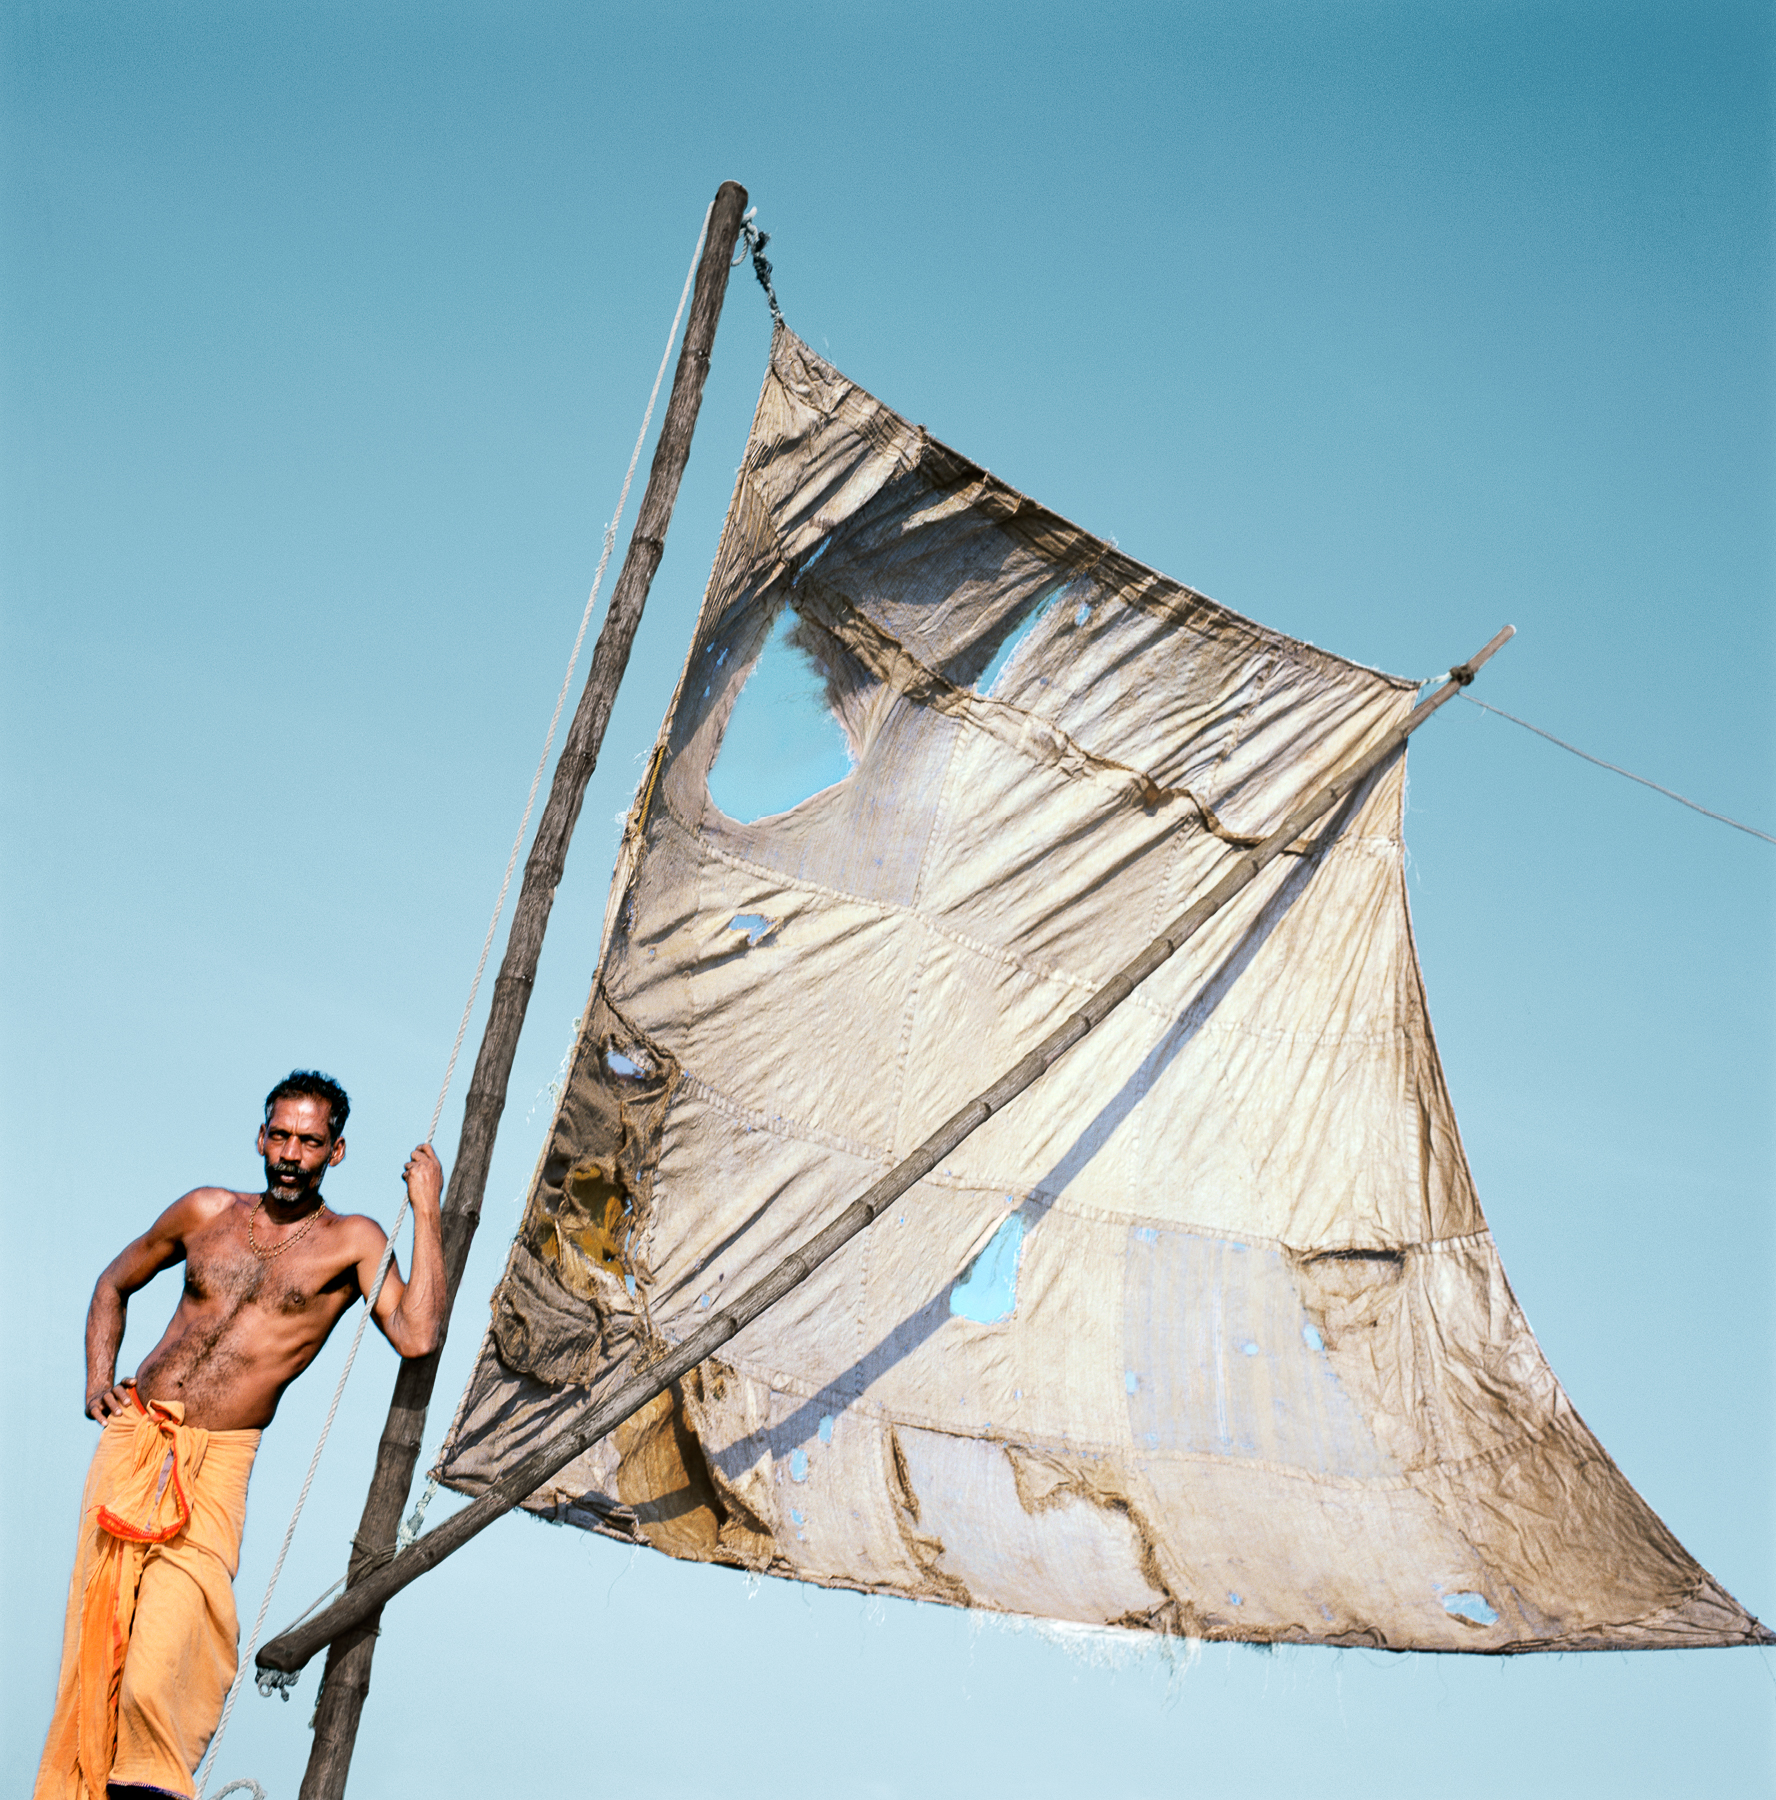 Man with Sail